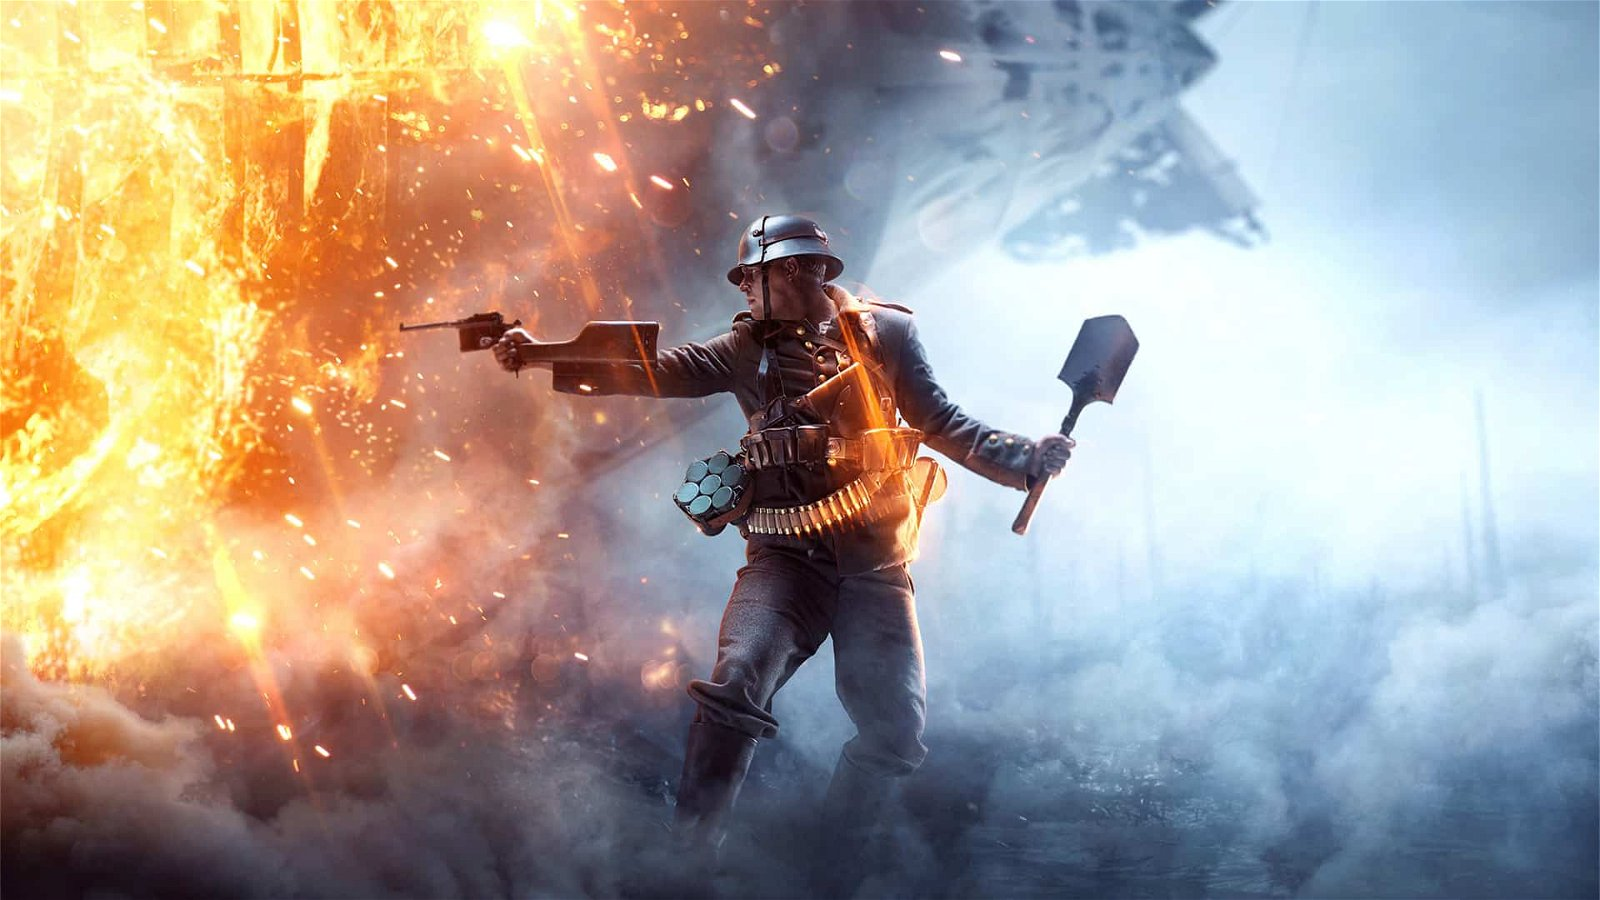 EA Announces November 20 Launch Date for Battlefield V; Updates Fiscal Year 2019 Expectations